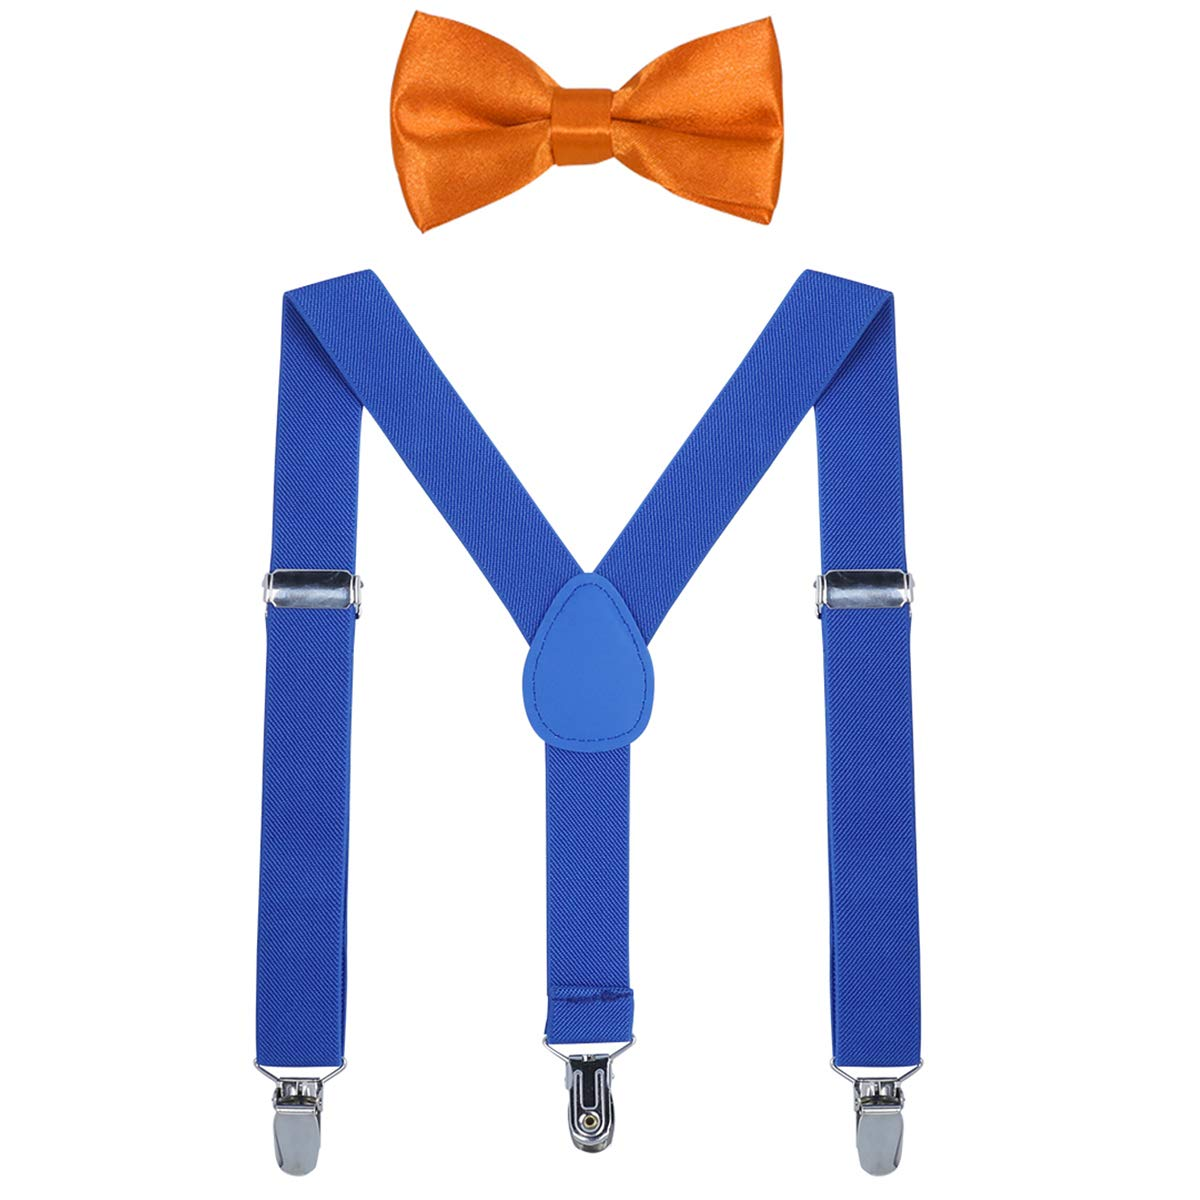 Kids Suspender Bow Tie Sets Adjustable Braces With Bowtie Gift Idea for Boys and Girls by WELROG Black